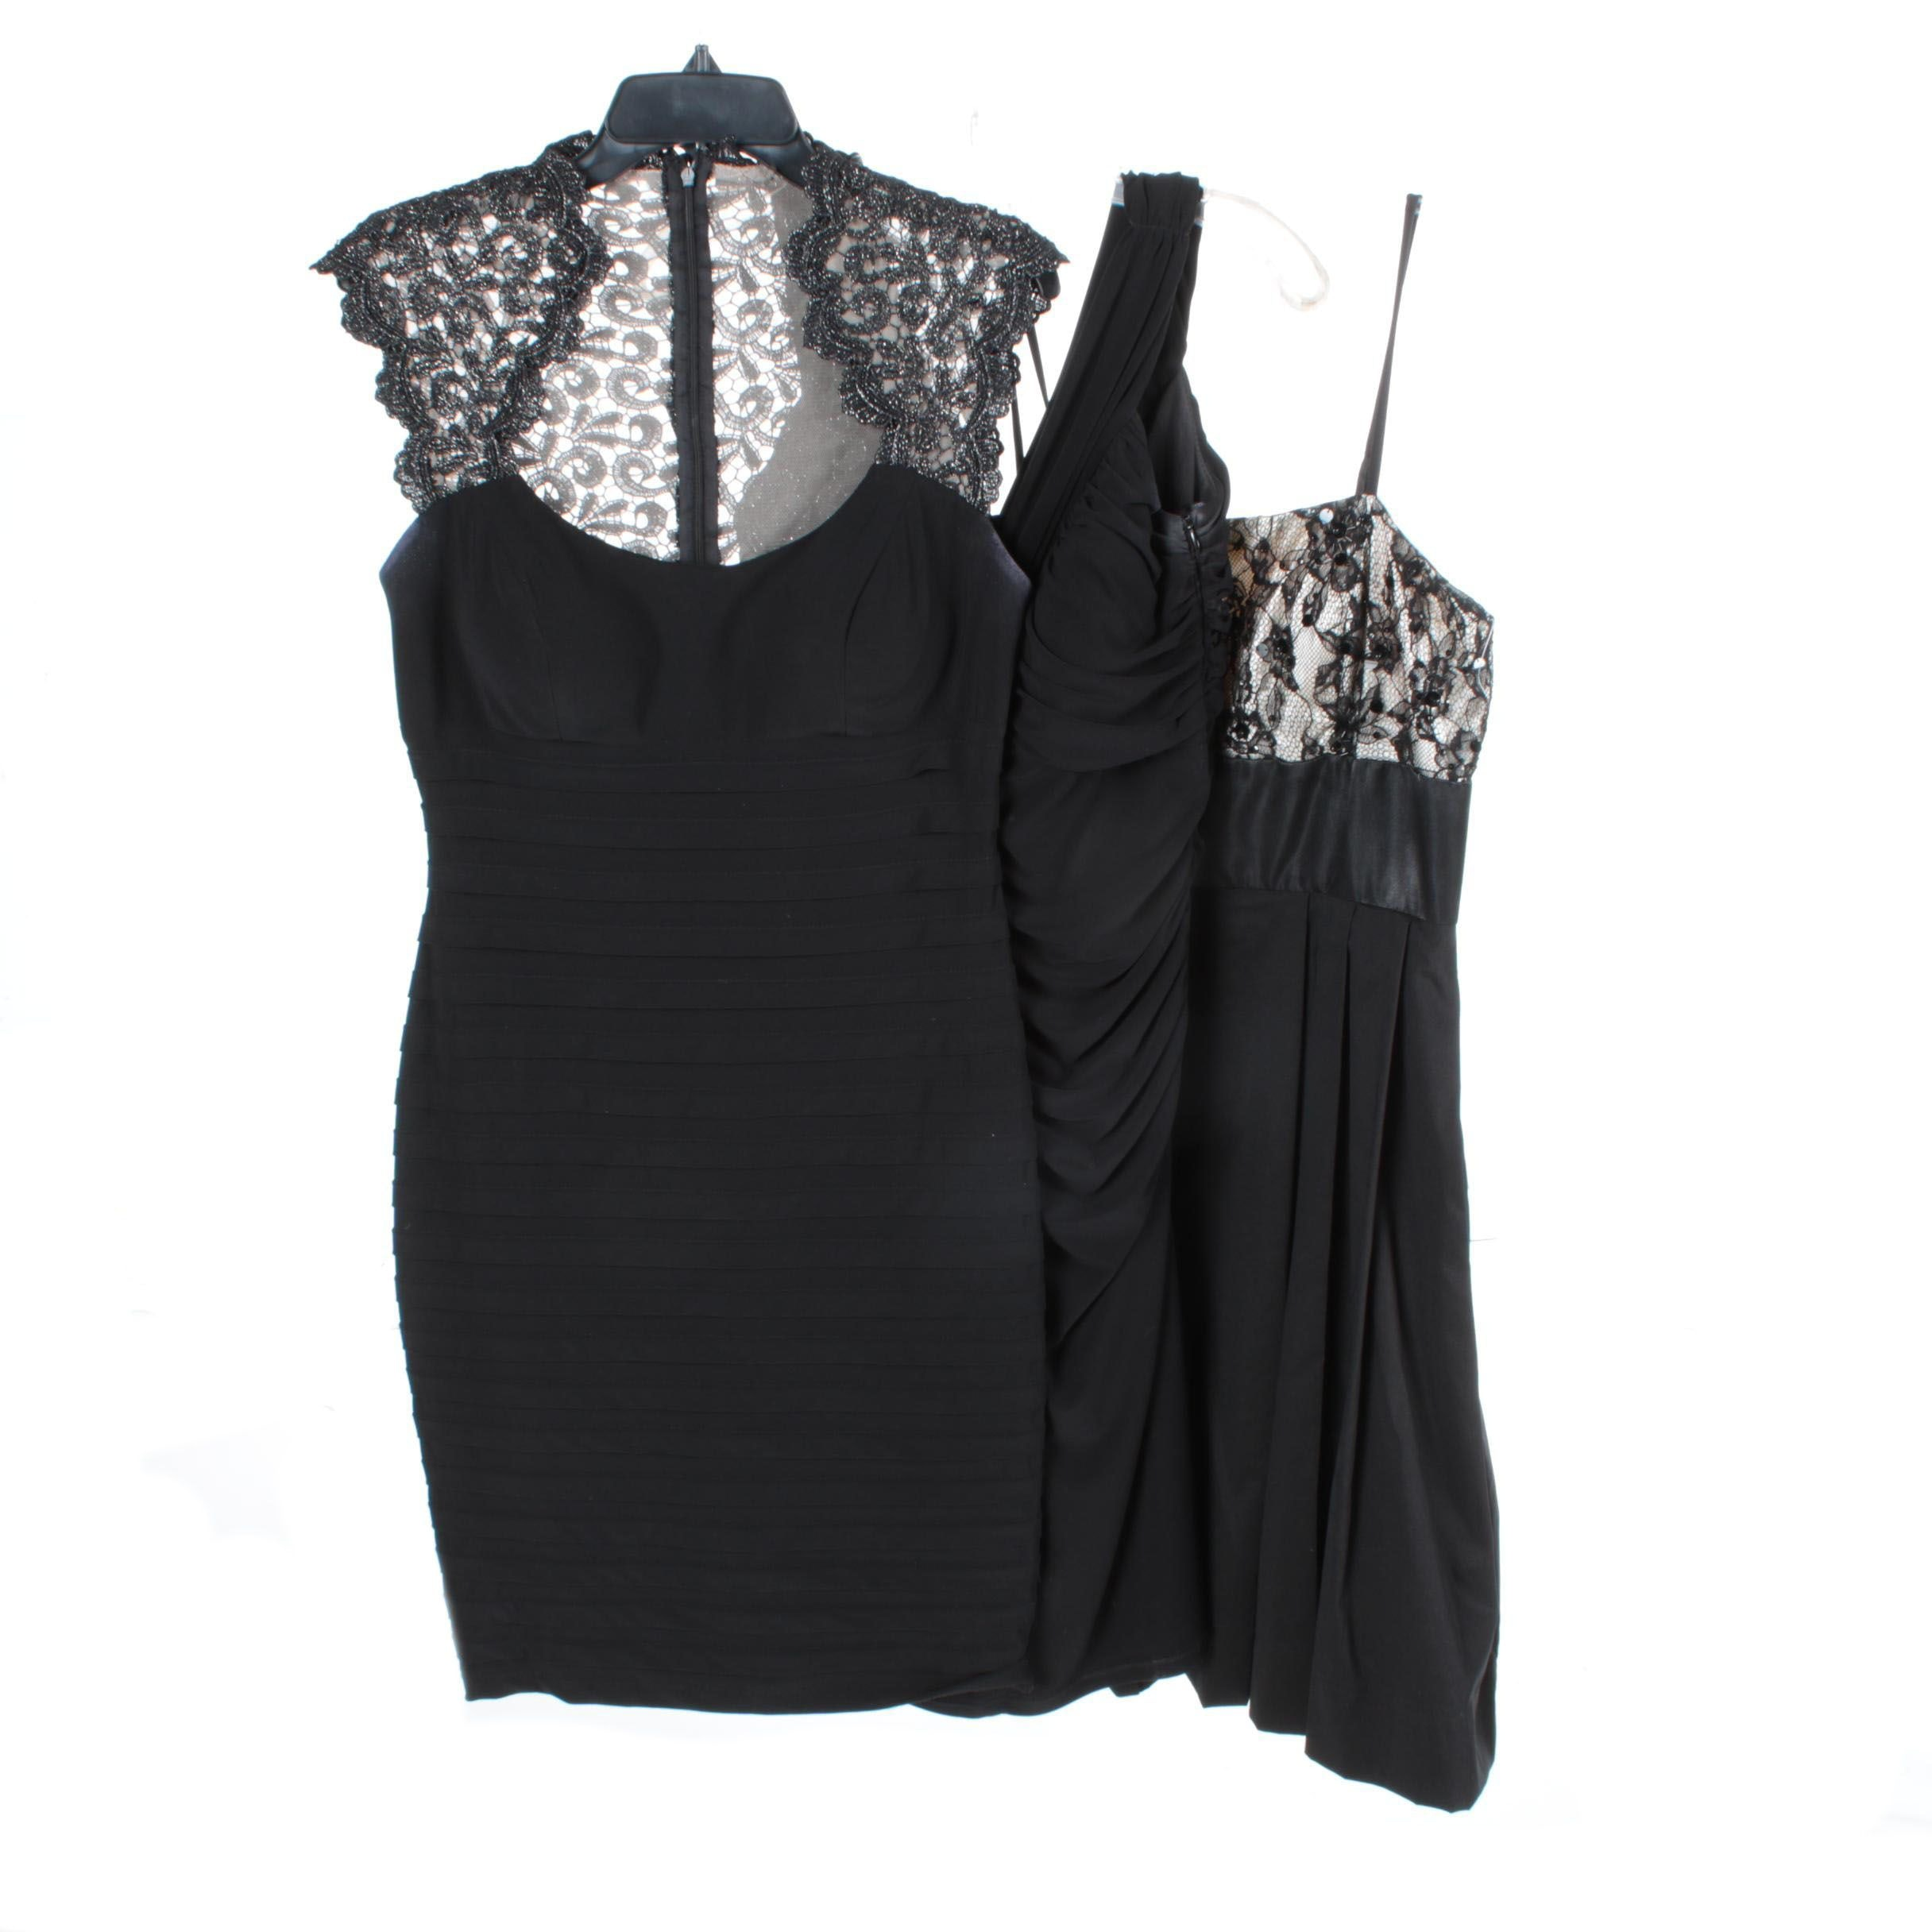 Women's Black Evening Dresses Including Joseph Ribkoff